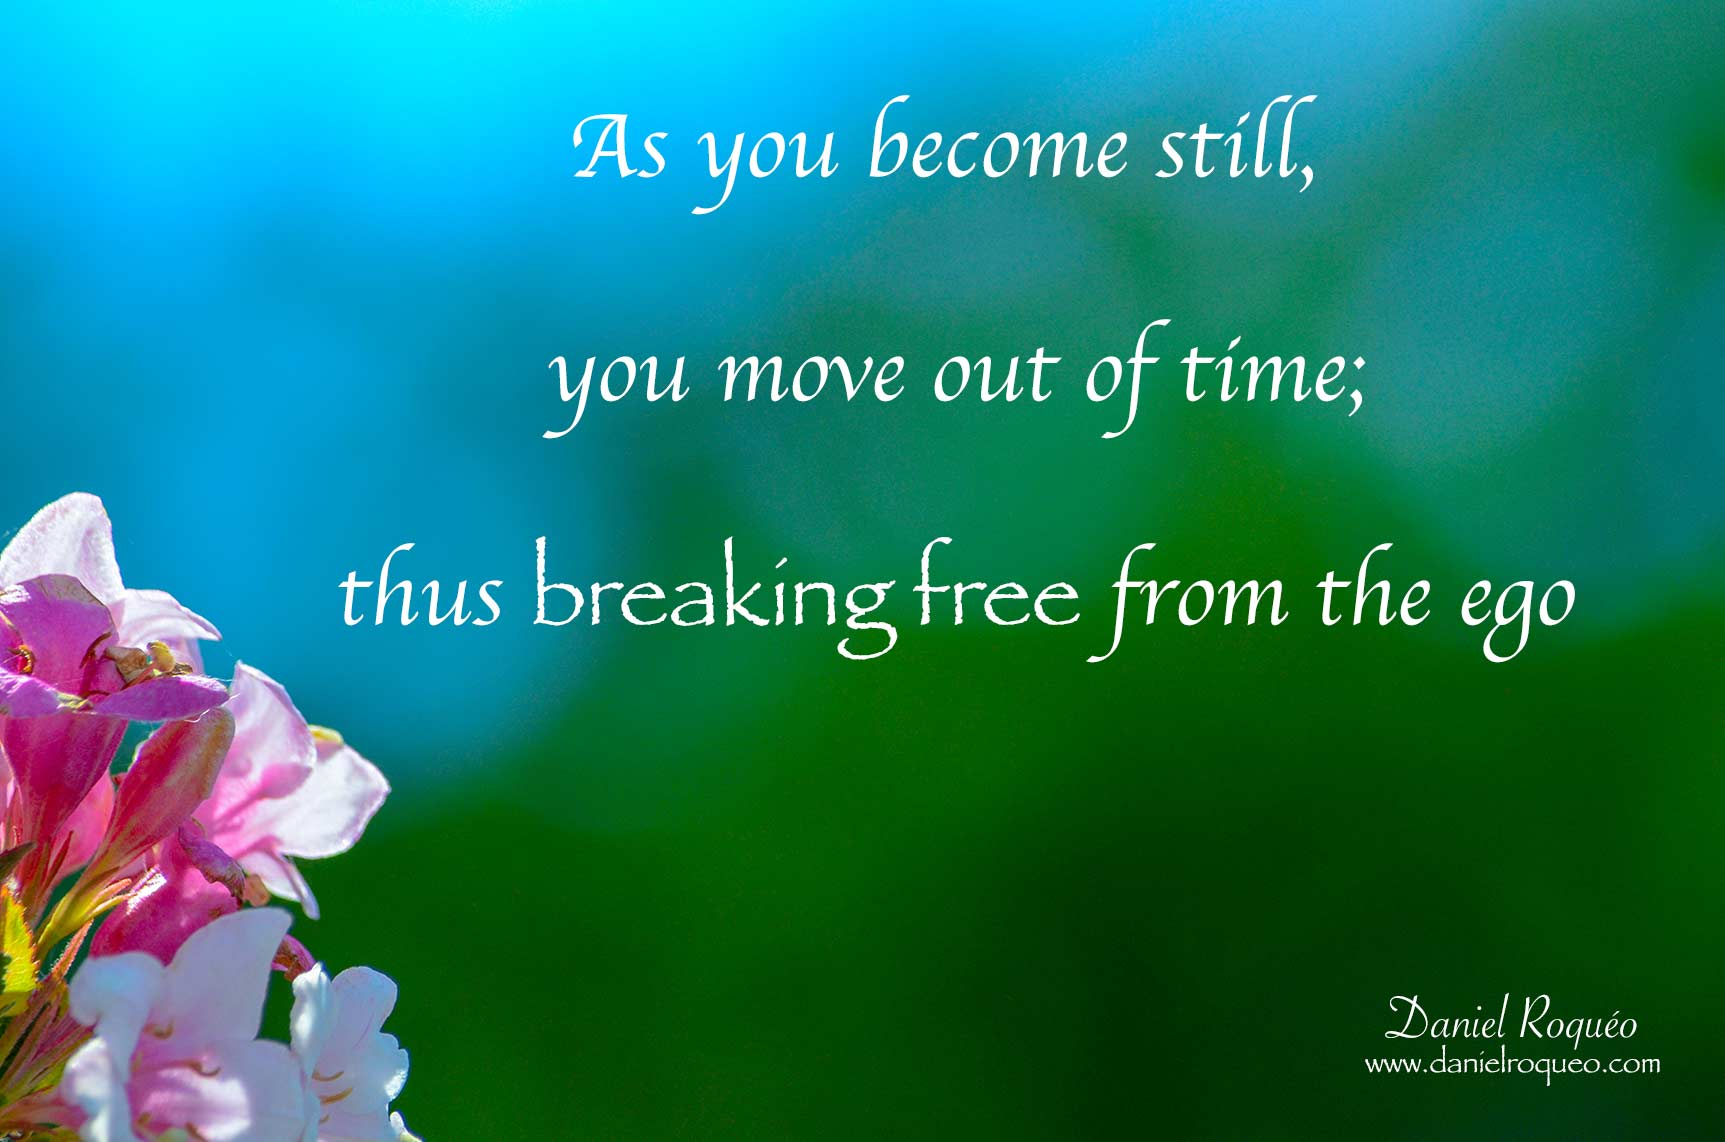 as you become still you break free from the ego